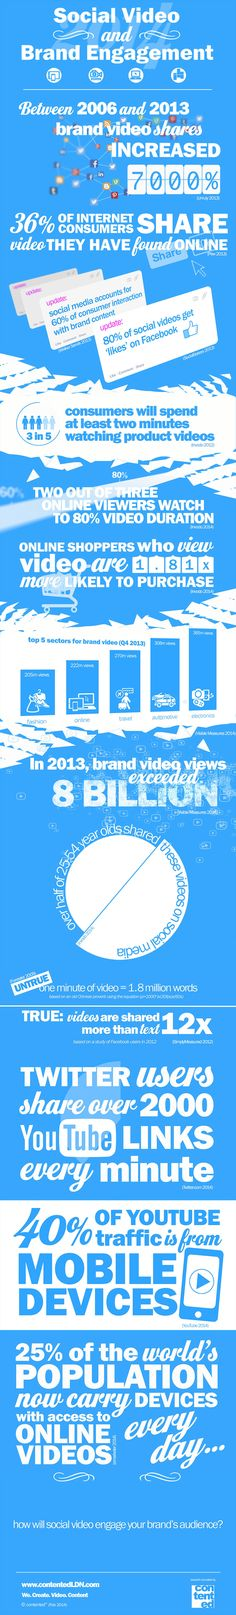 Social Video and Brand Engagement [#Infographic]